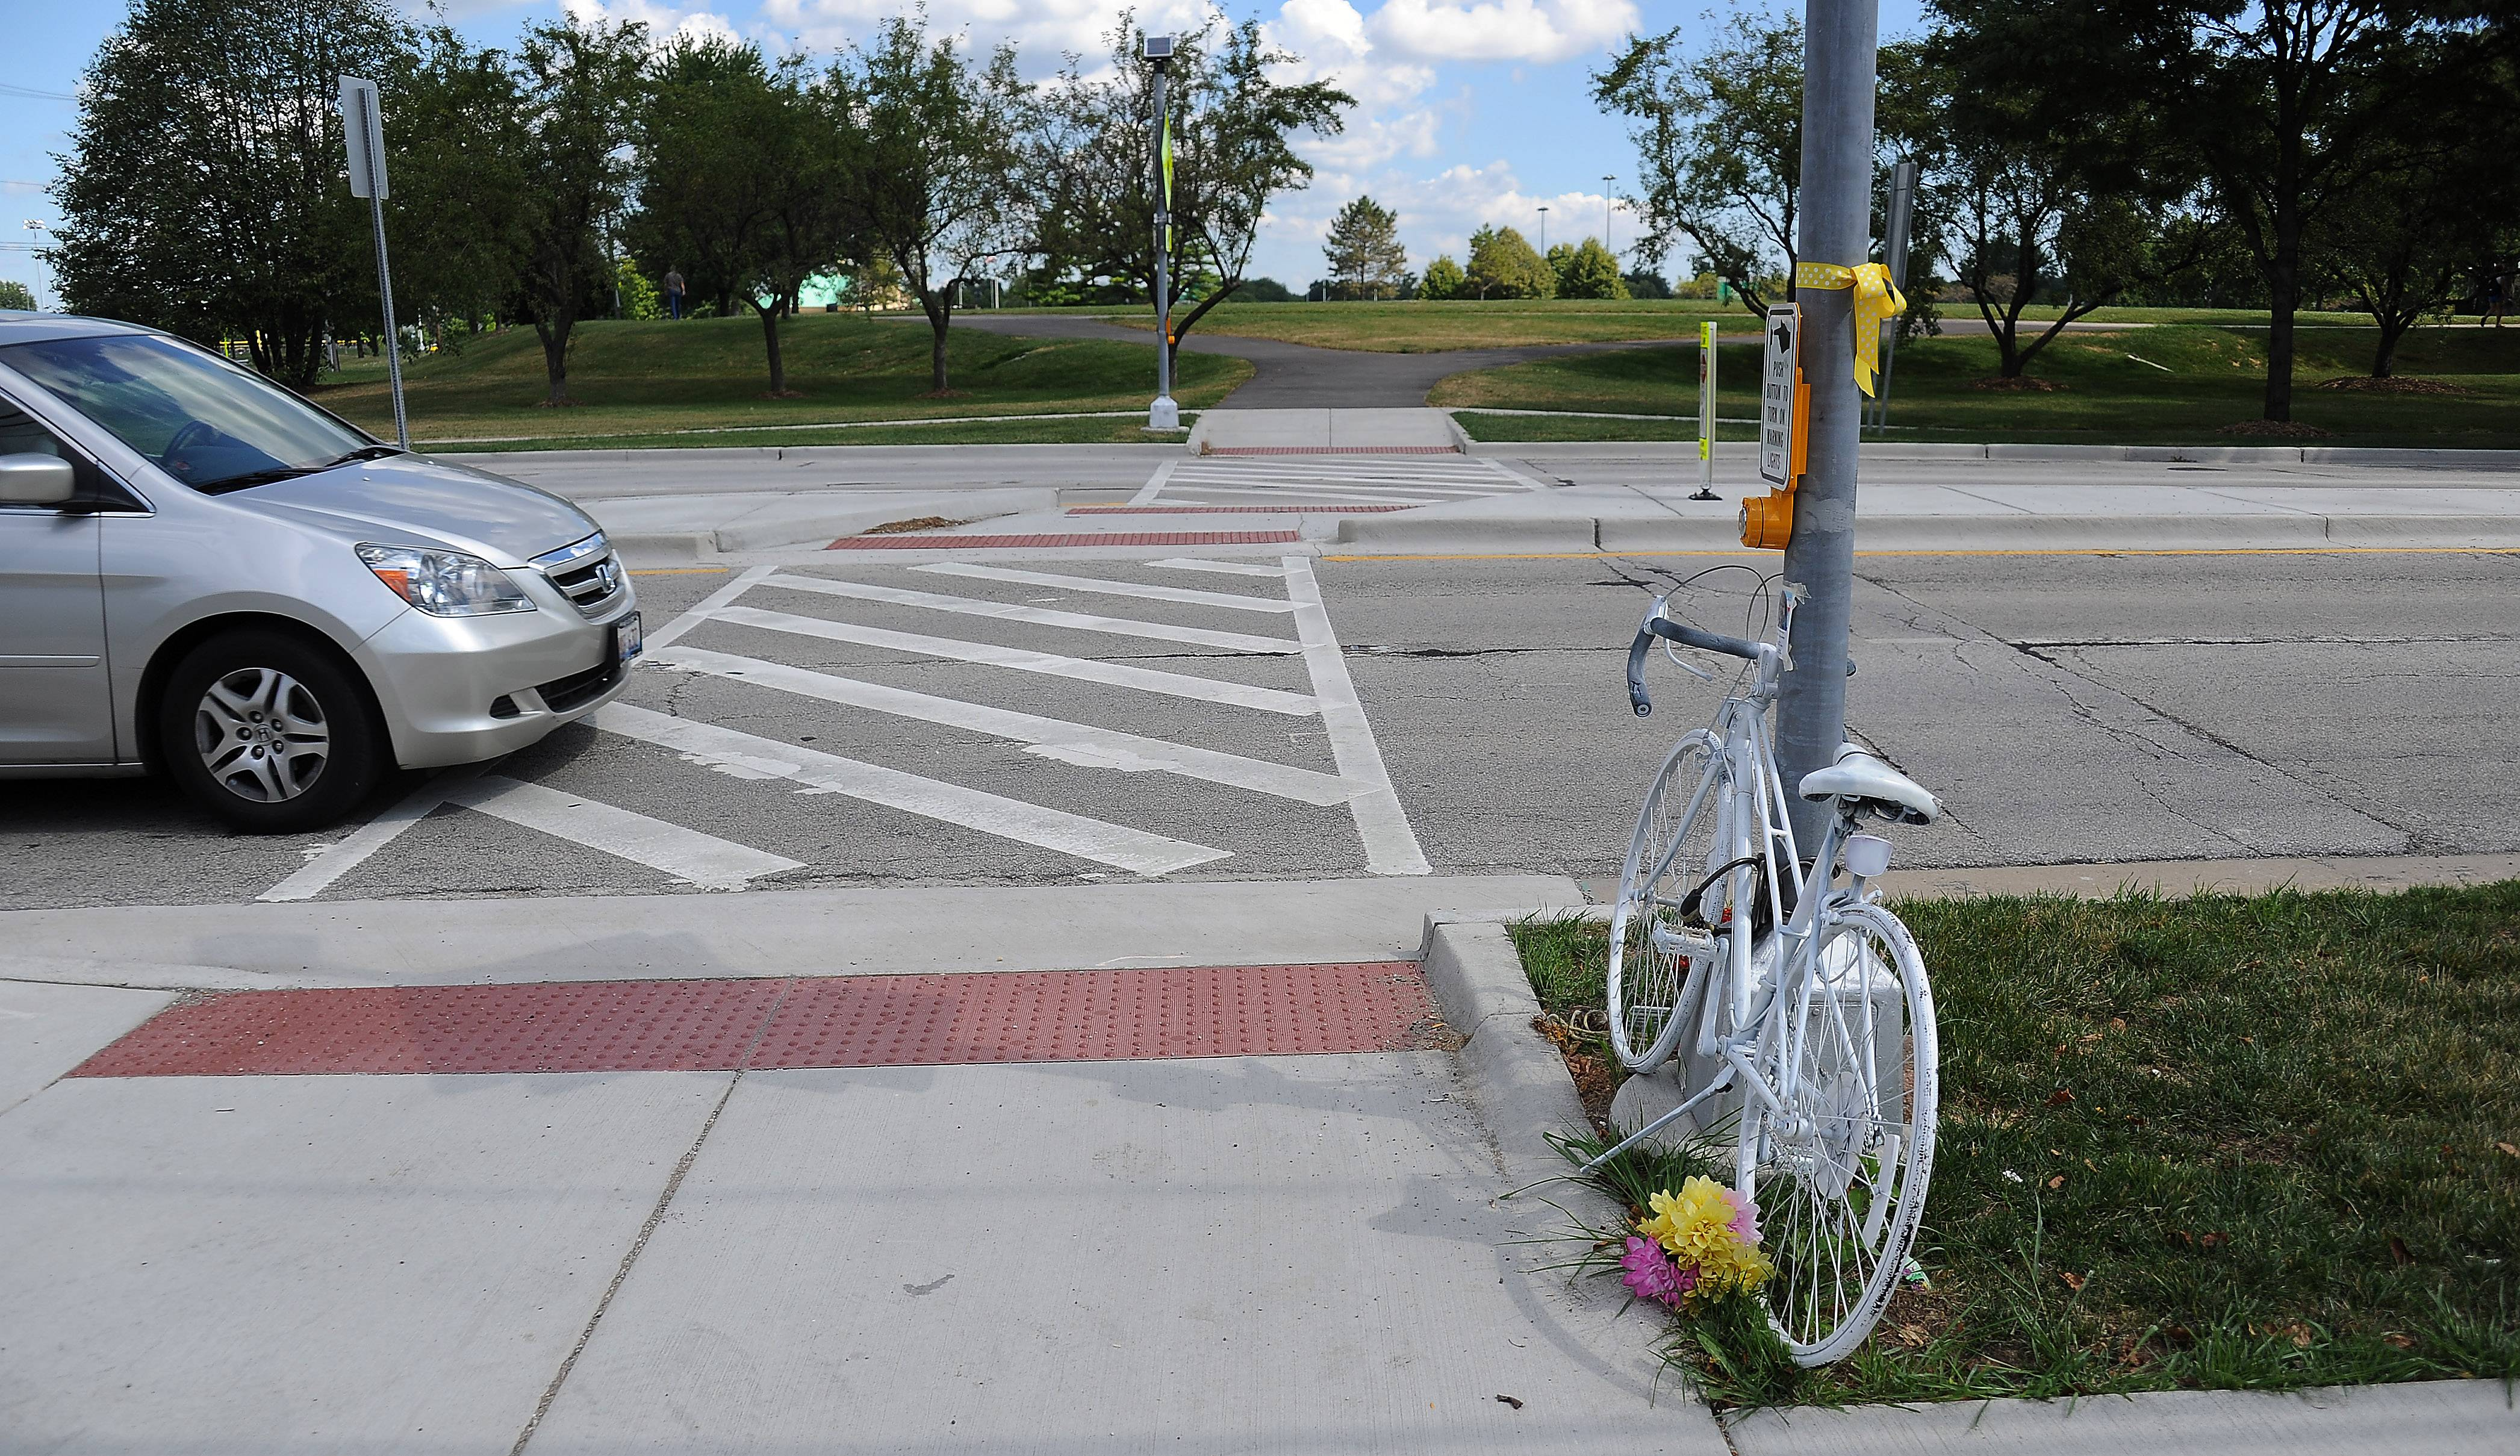 Editorial: In wake of tragedy, multiple solutions needed to improve crosswalk safety